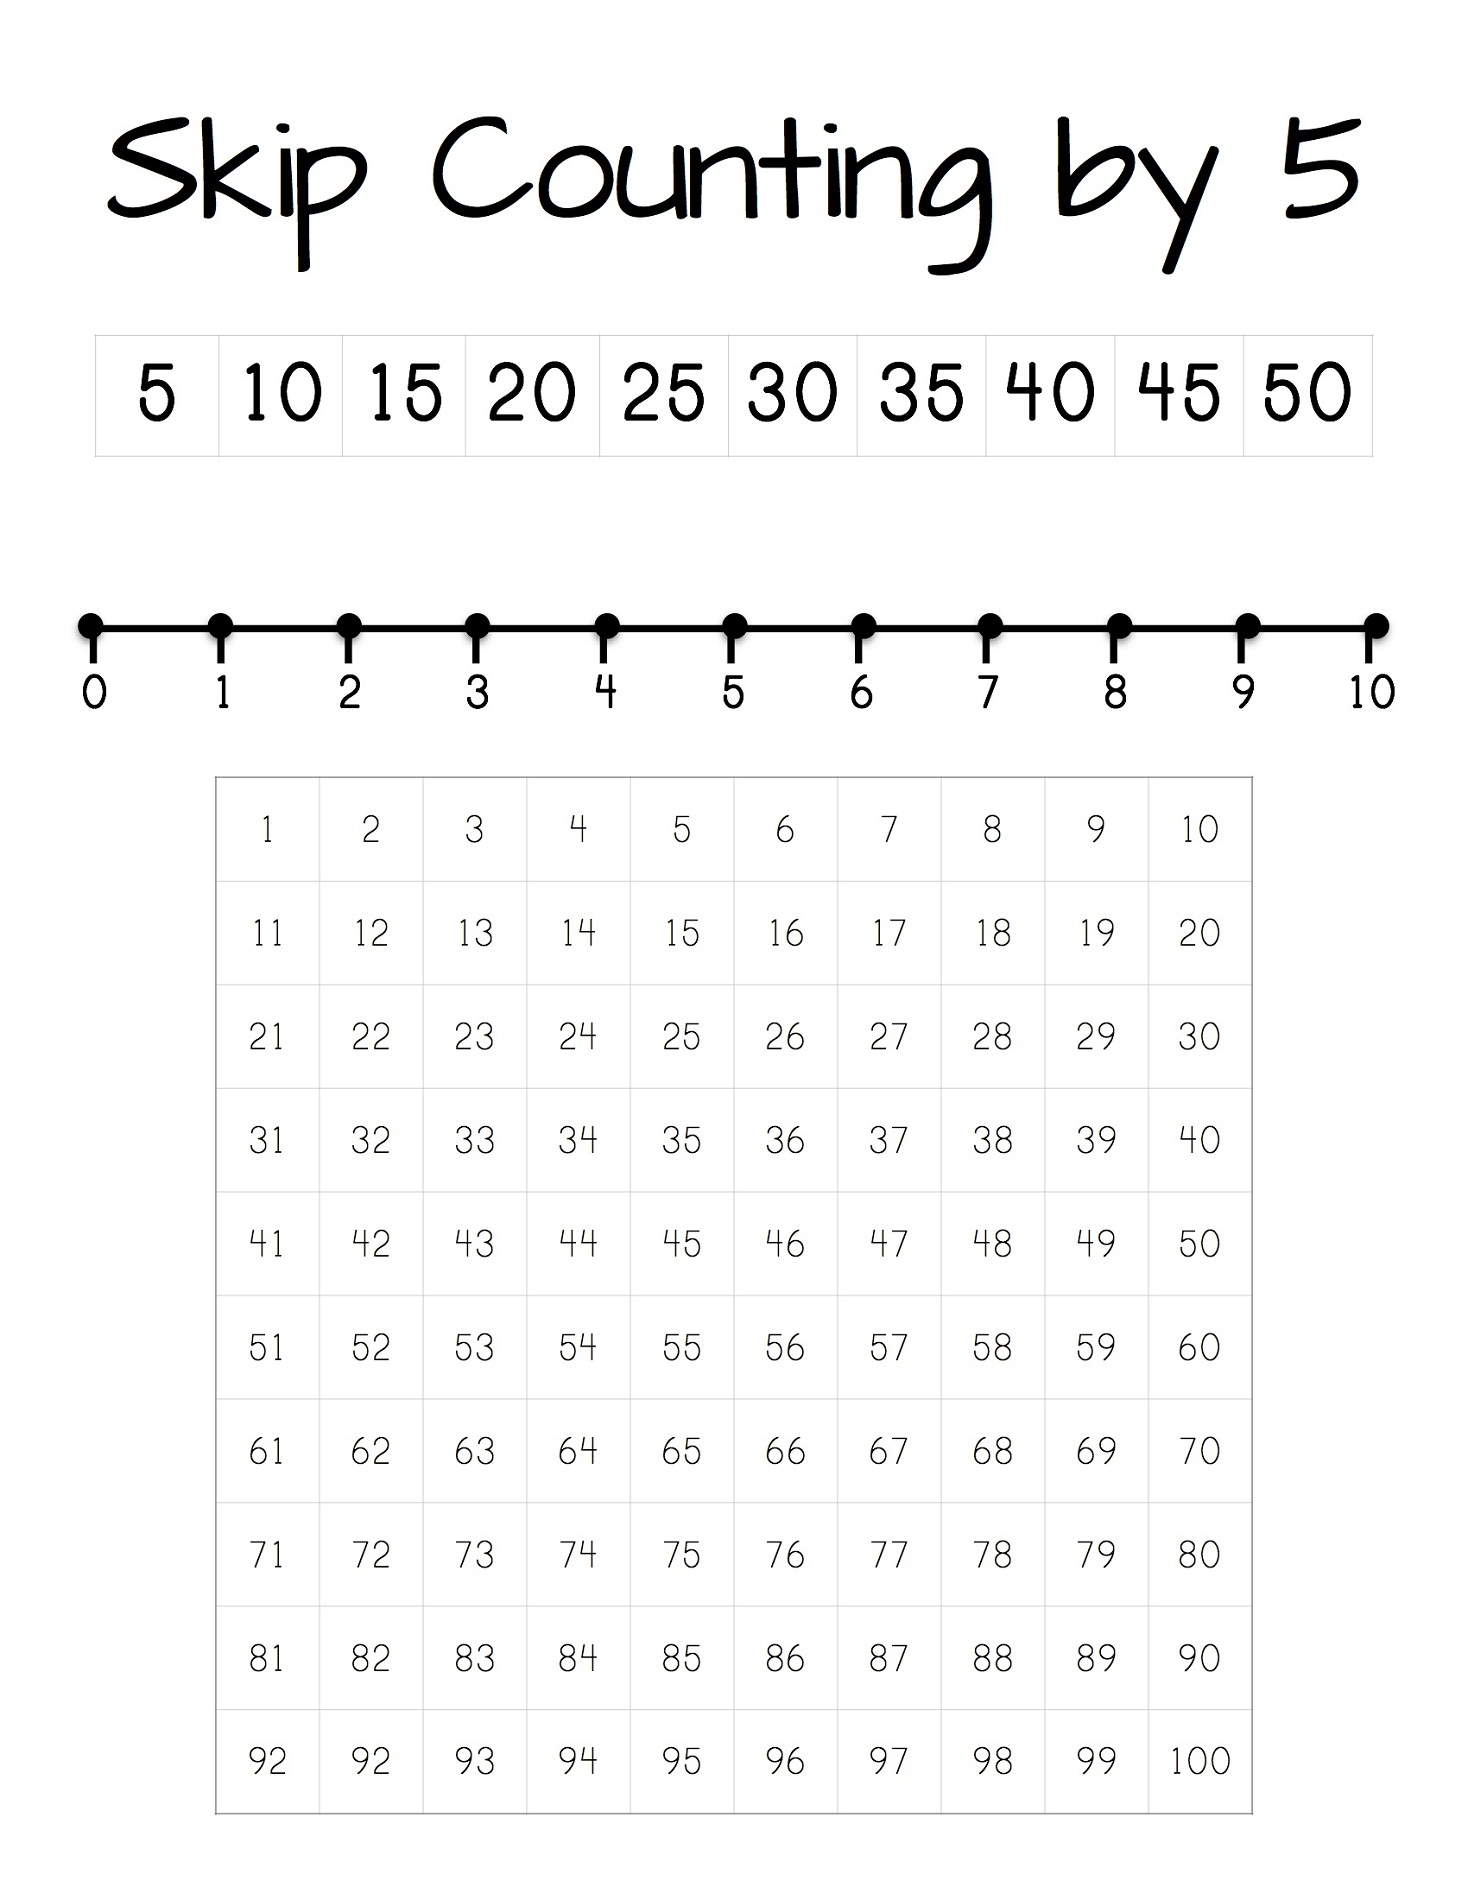 Count by 5 Worksheets to Print – Counting by 5s Worksheet